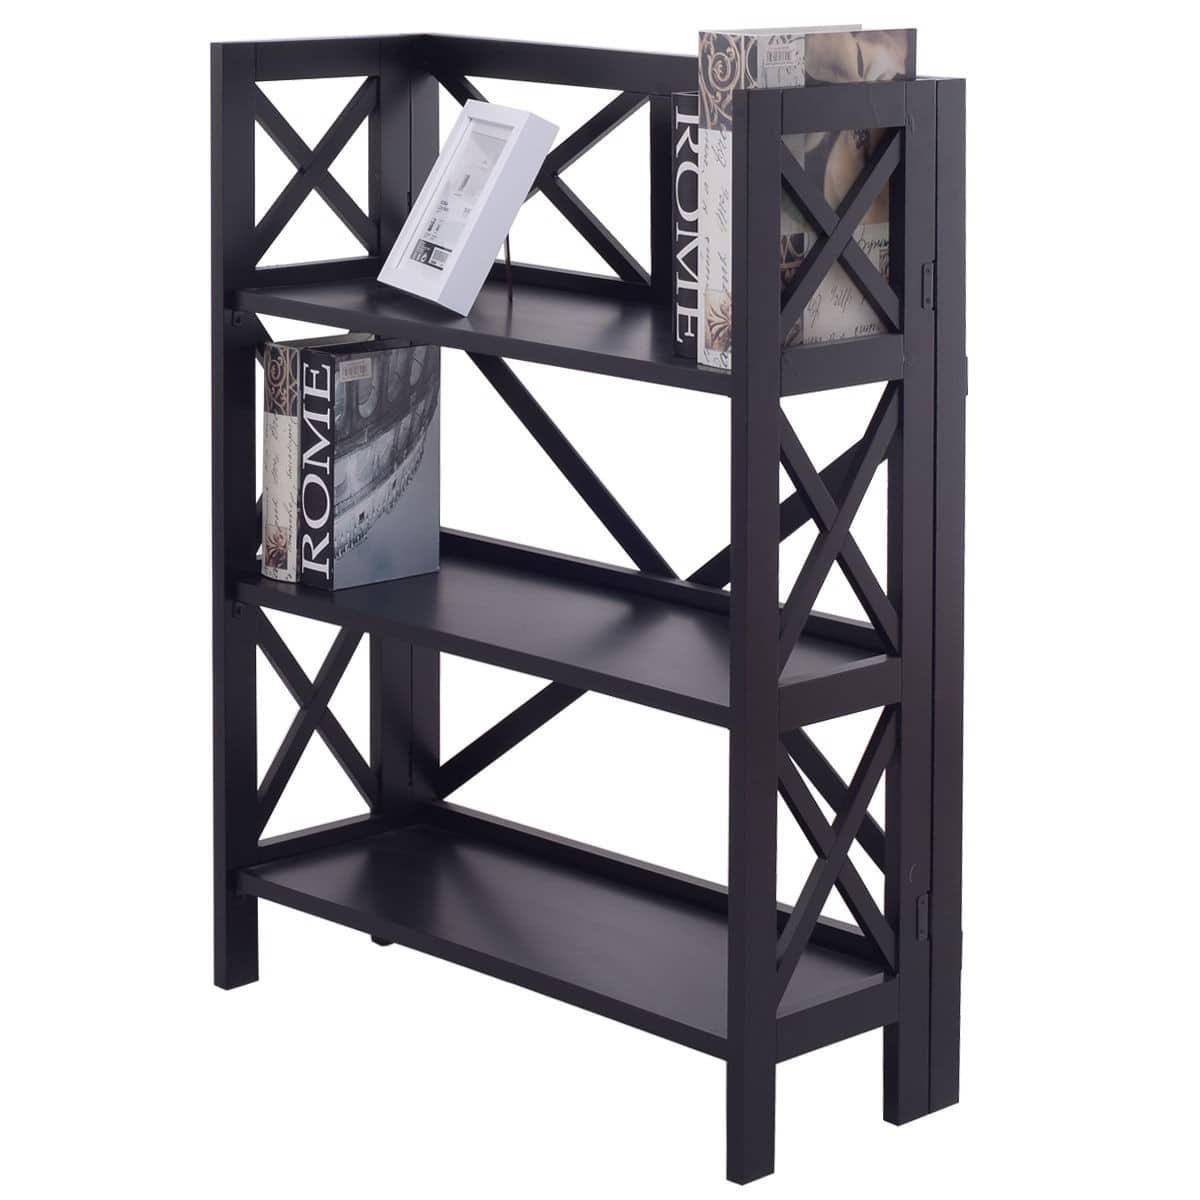 Costway 3-tier Foldable Bookcase $39.95 + Free Shipping